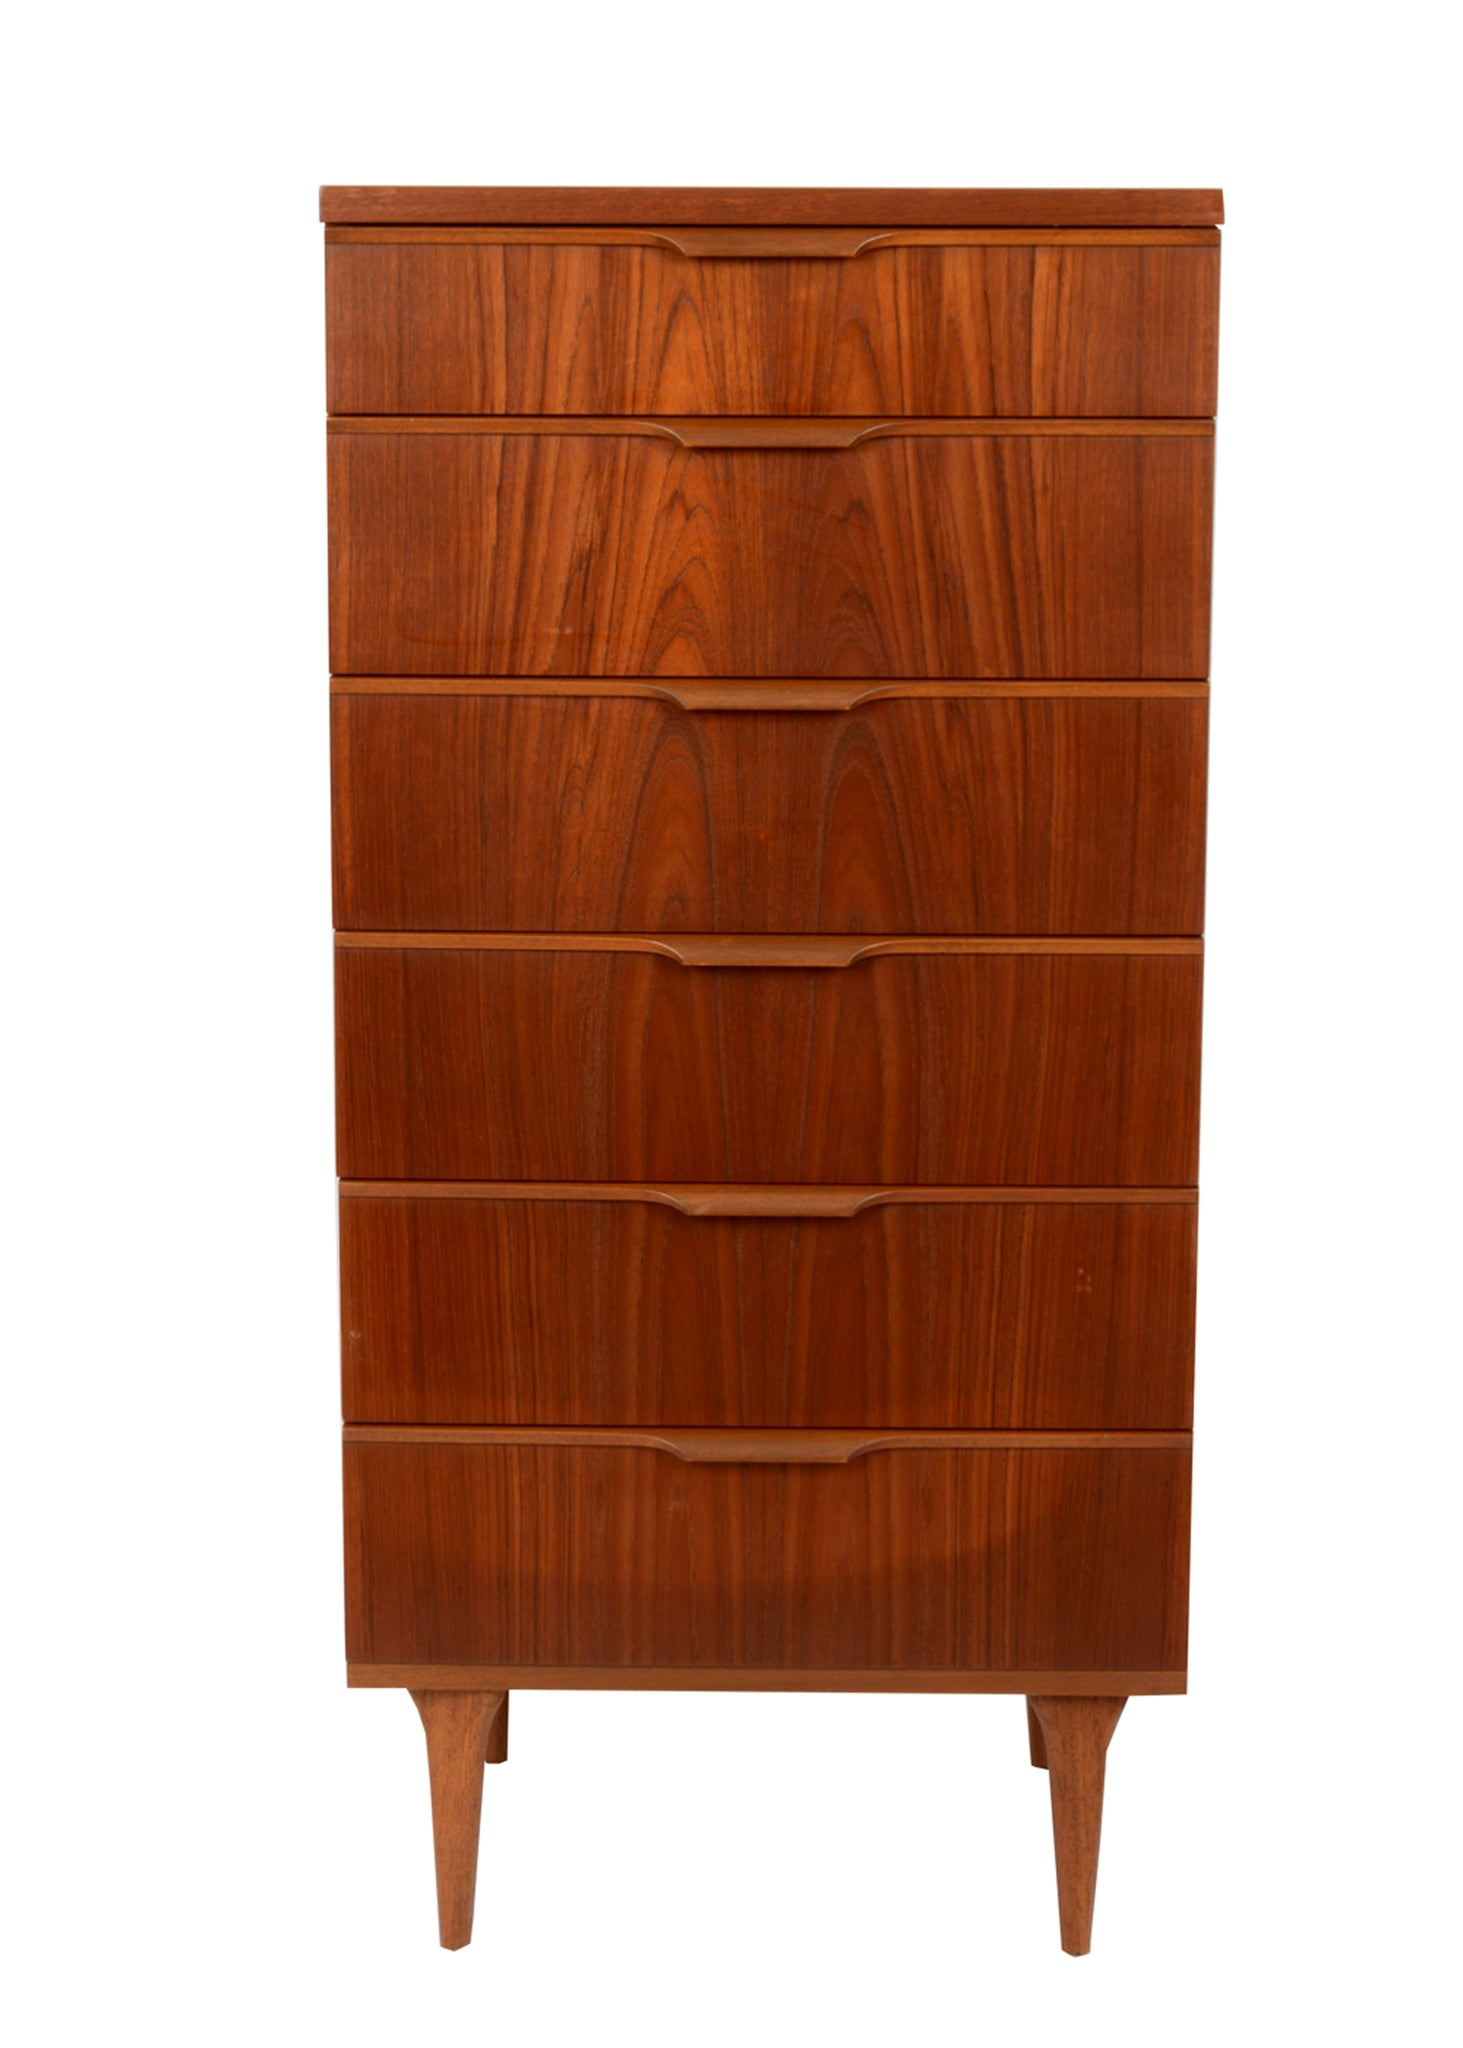 Teak Danish Inspired Mid Century Chest of Drawers